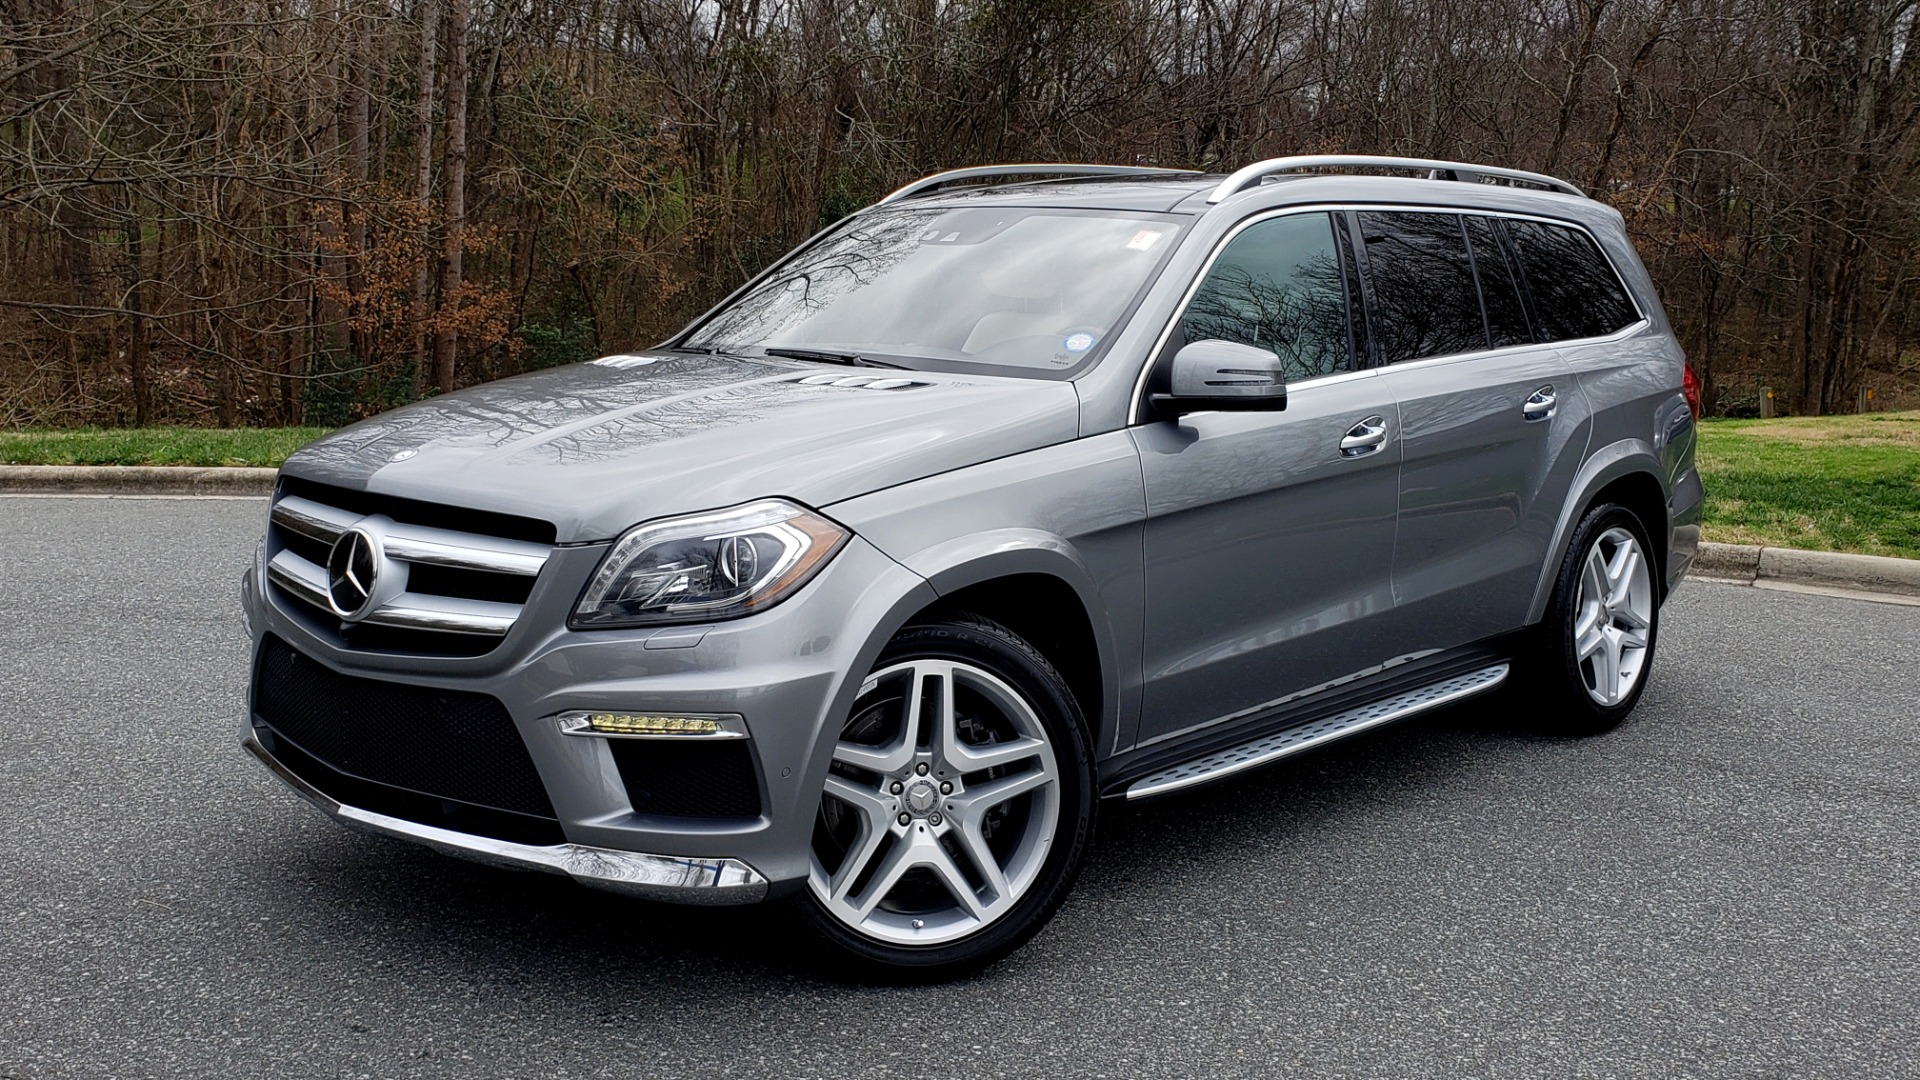 Used 2016 Mercedes-Benz GL 550 4MATIC / NAV / DRVR ASST / DUAL-ROOF / REARVIEW for sale Sold at Formula Imports in Charlotte NC 28227 1